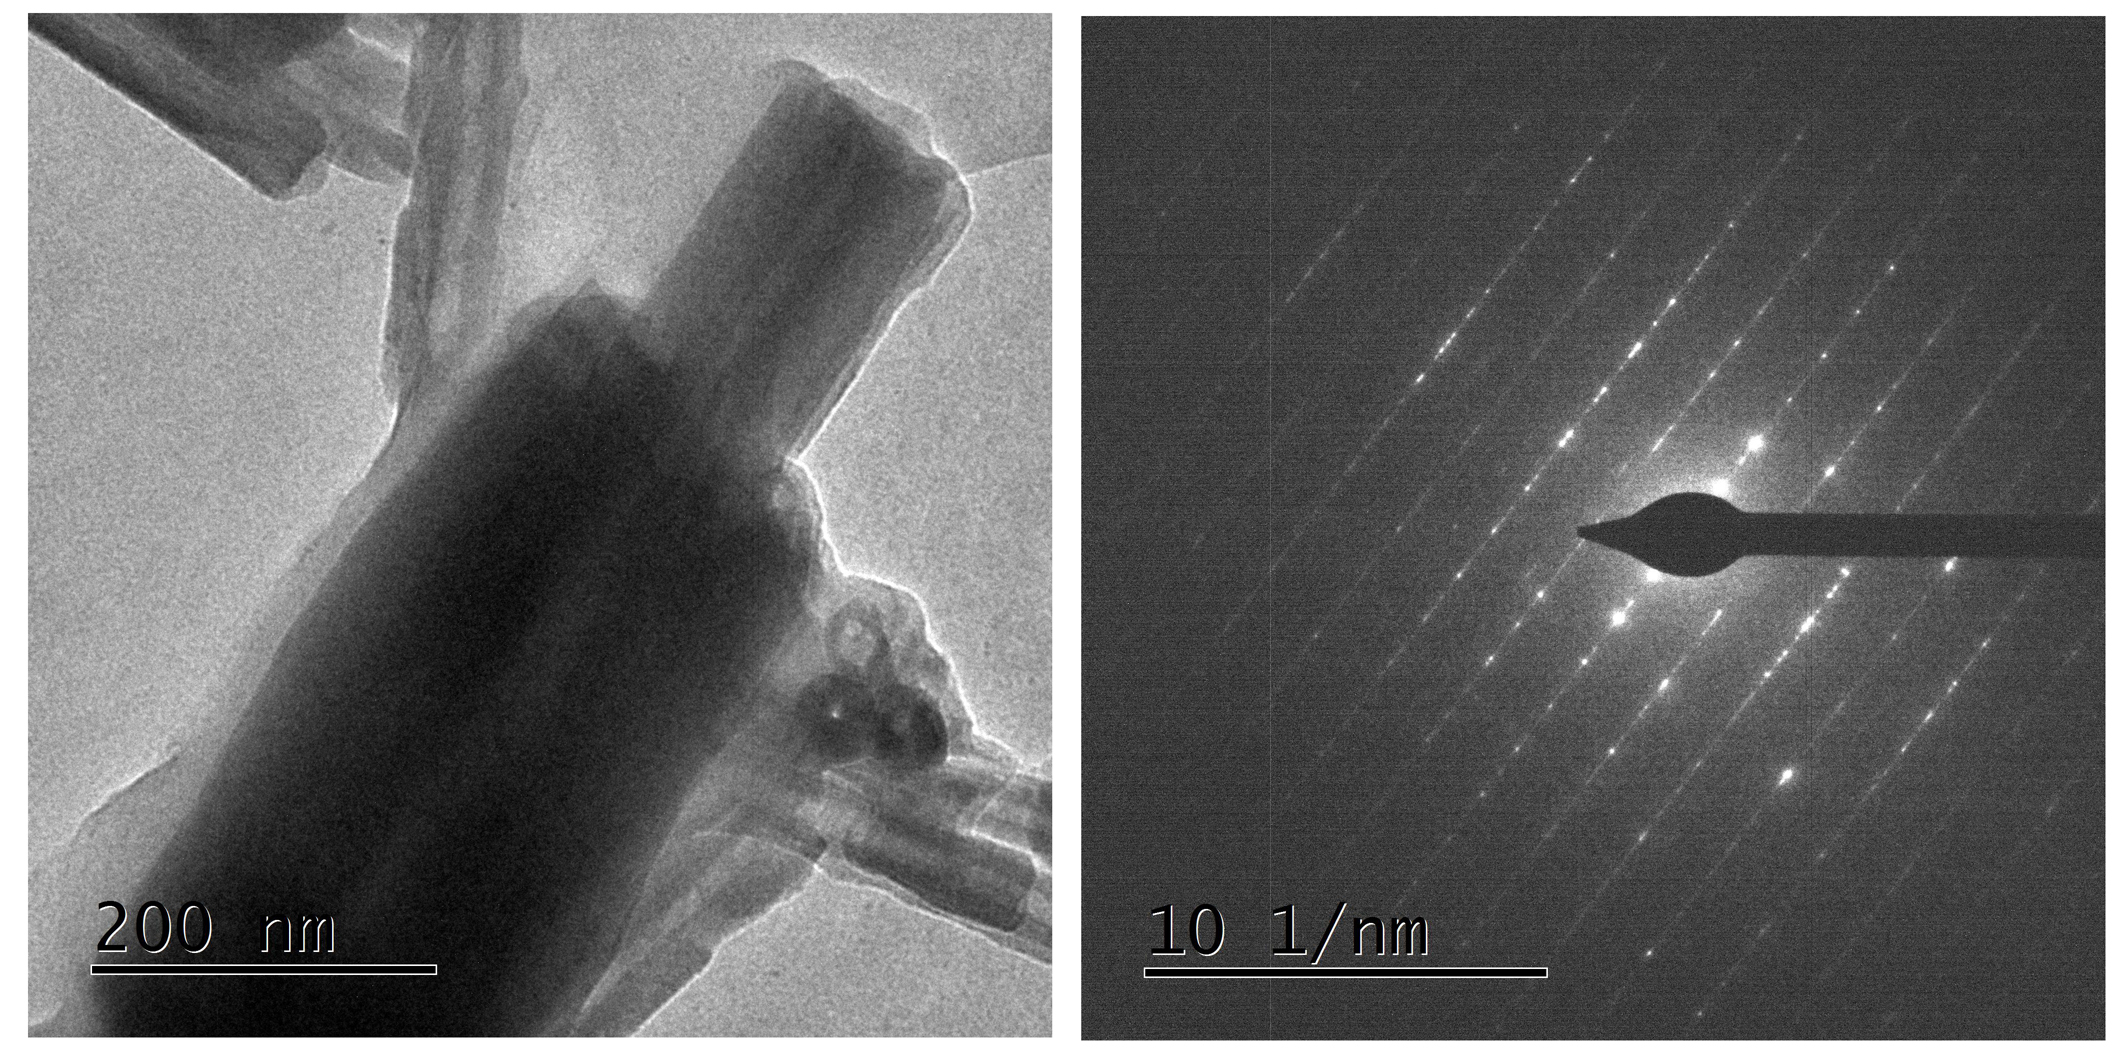 TEM image and electron diffraction pattern of non-asbestiform serpentine fiber from natural occurence in Northern California